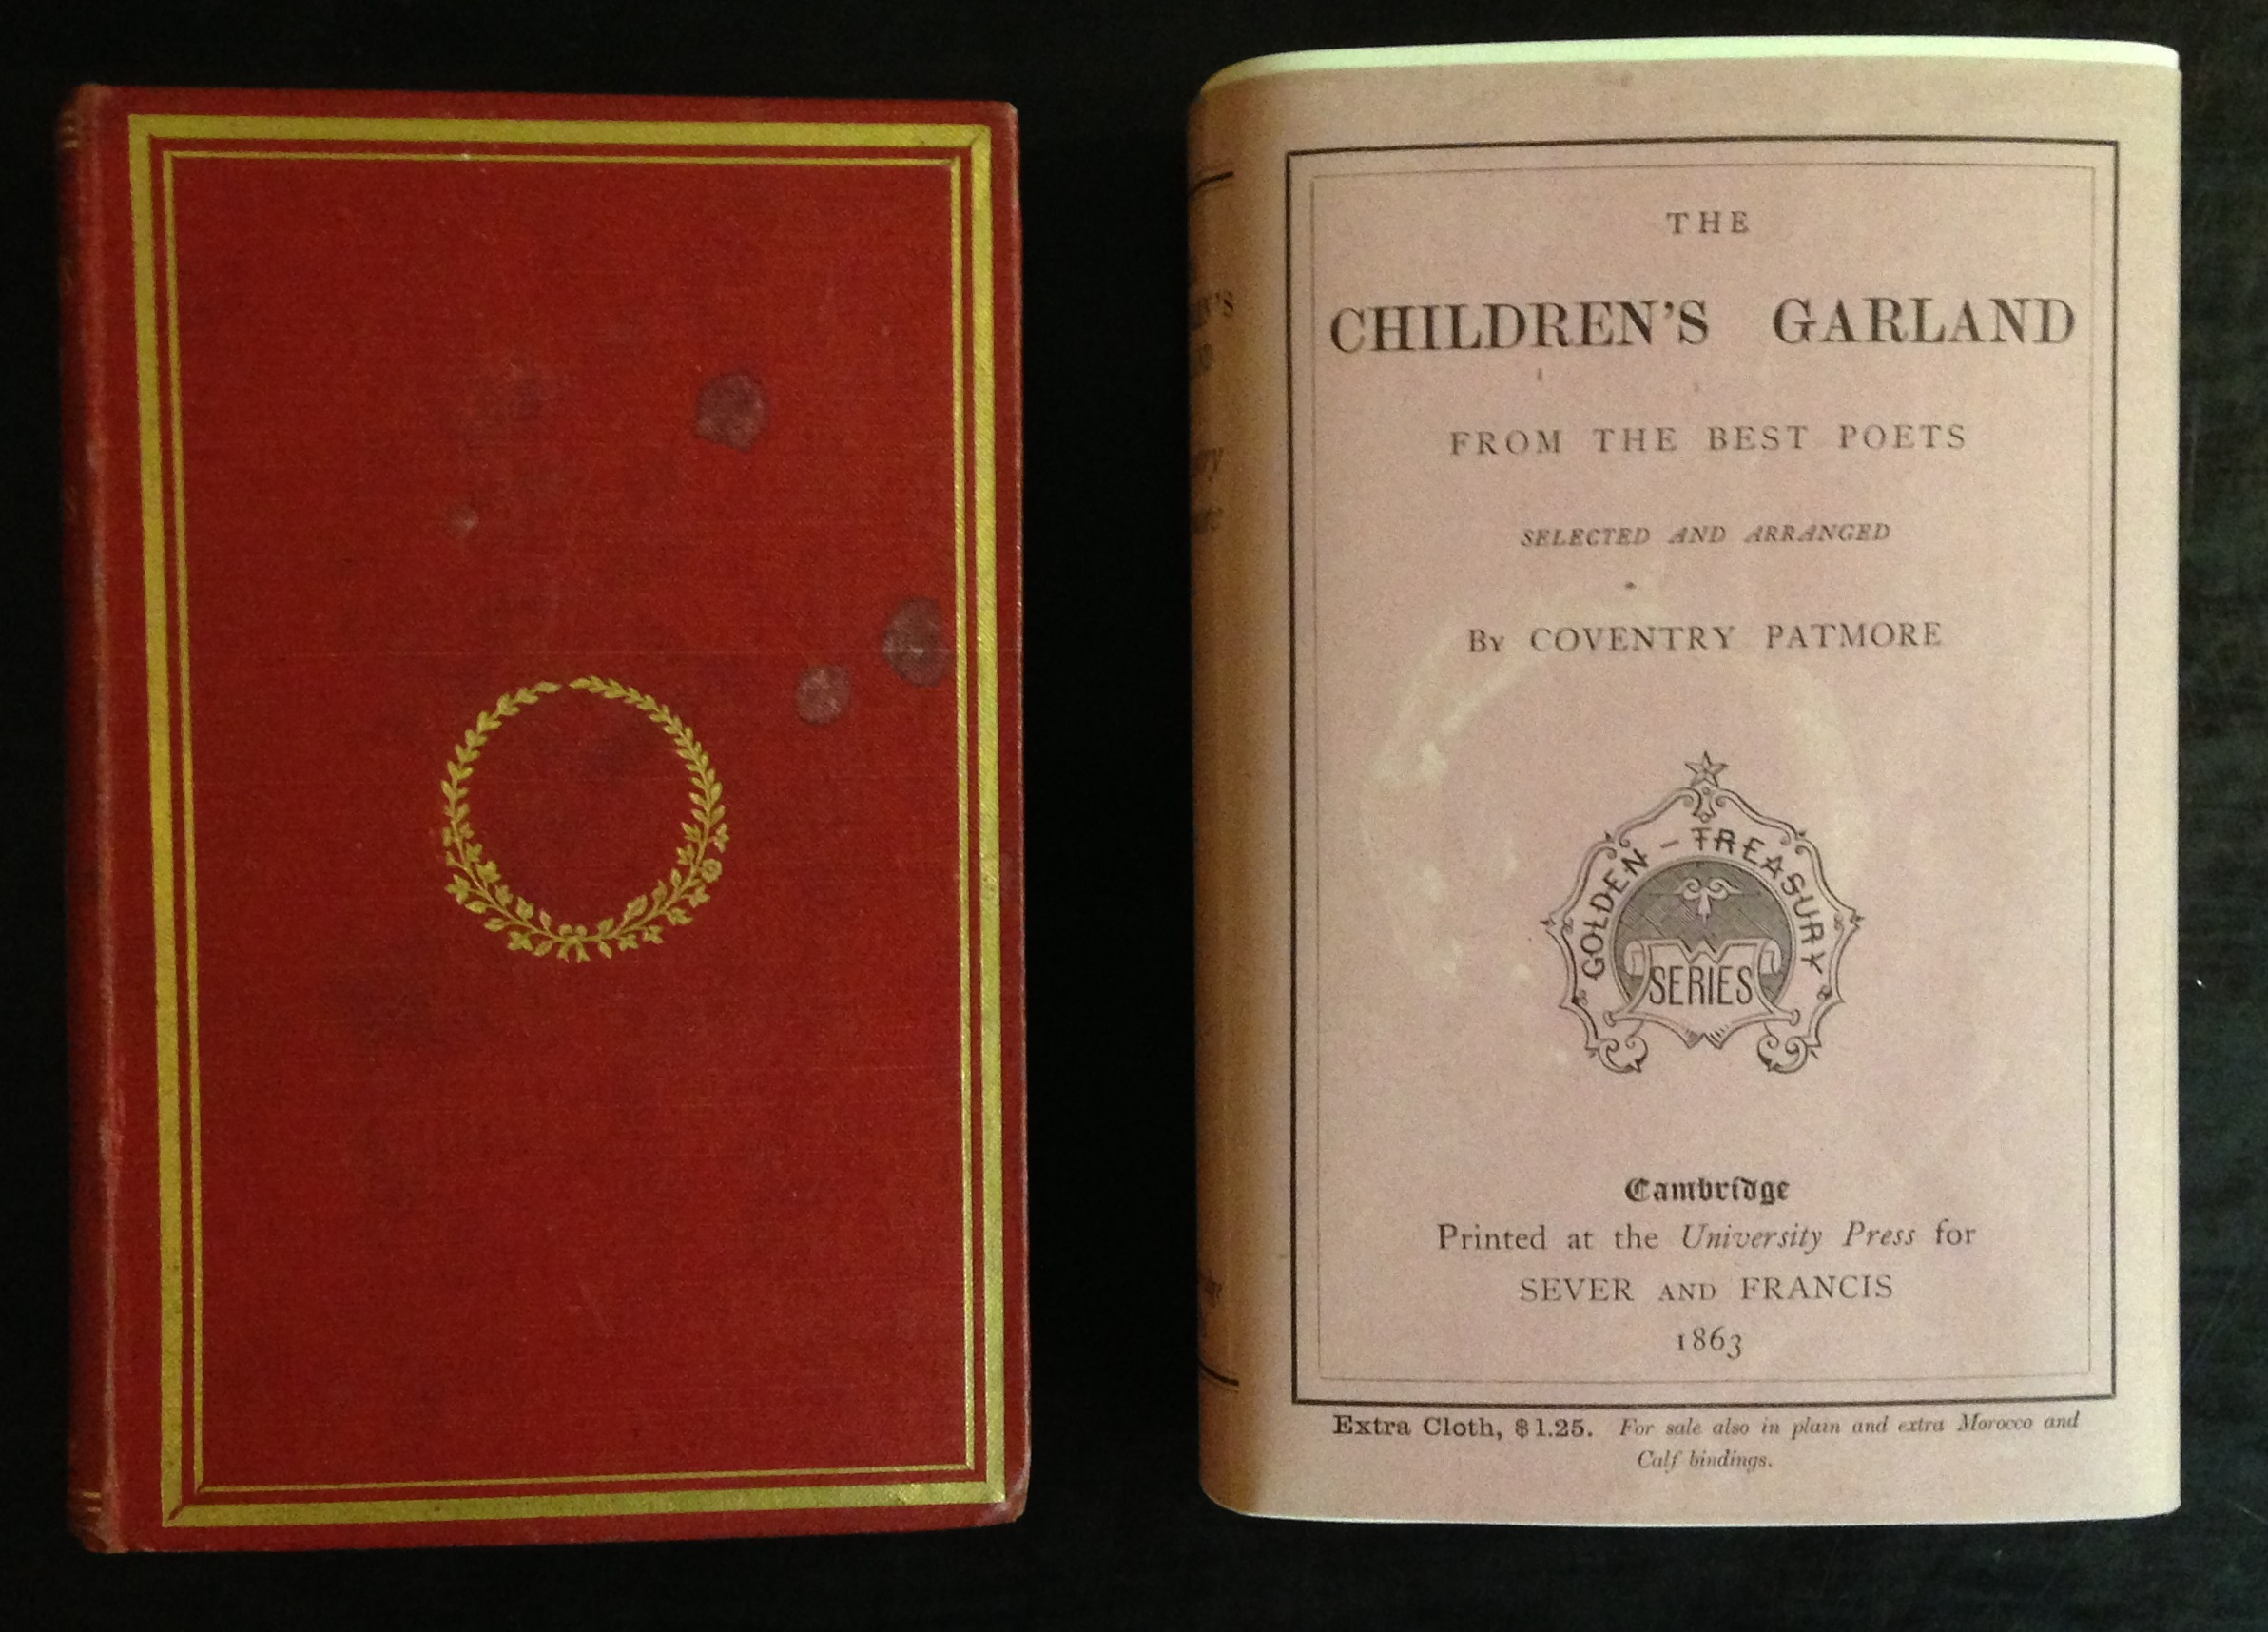 "A fine example of one of the earliest surviving American dust jackets. The Children's Garland from the Best Poets (Cambridge, Mass.: Sever and Francis, 1863) was issued in several binding styles, as advertised on the front of the dust jacket; this copy is bound in ""extra cloth"" and was priced at $1.25. The fragile jacket is printed on the spine and front panel only, and it is in the form of a wrap-around band sealed on the reverse. This example was torn open rather than slipped off the book, but otherwise it has been carefully preserved."